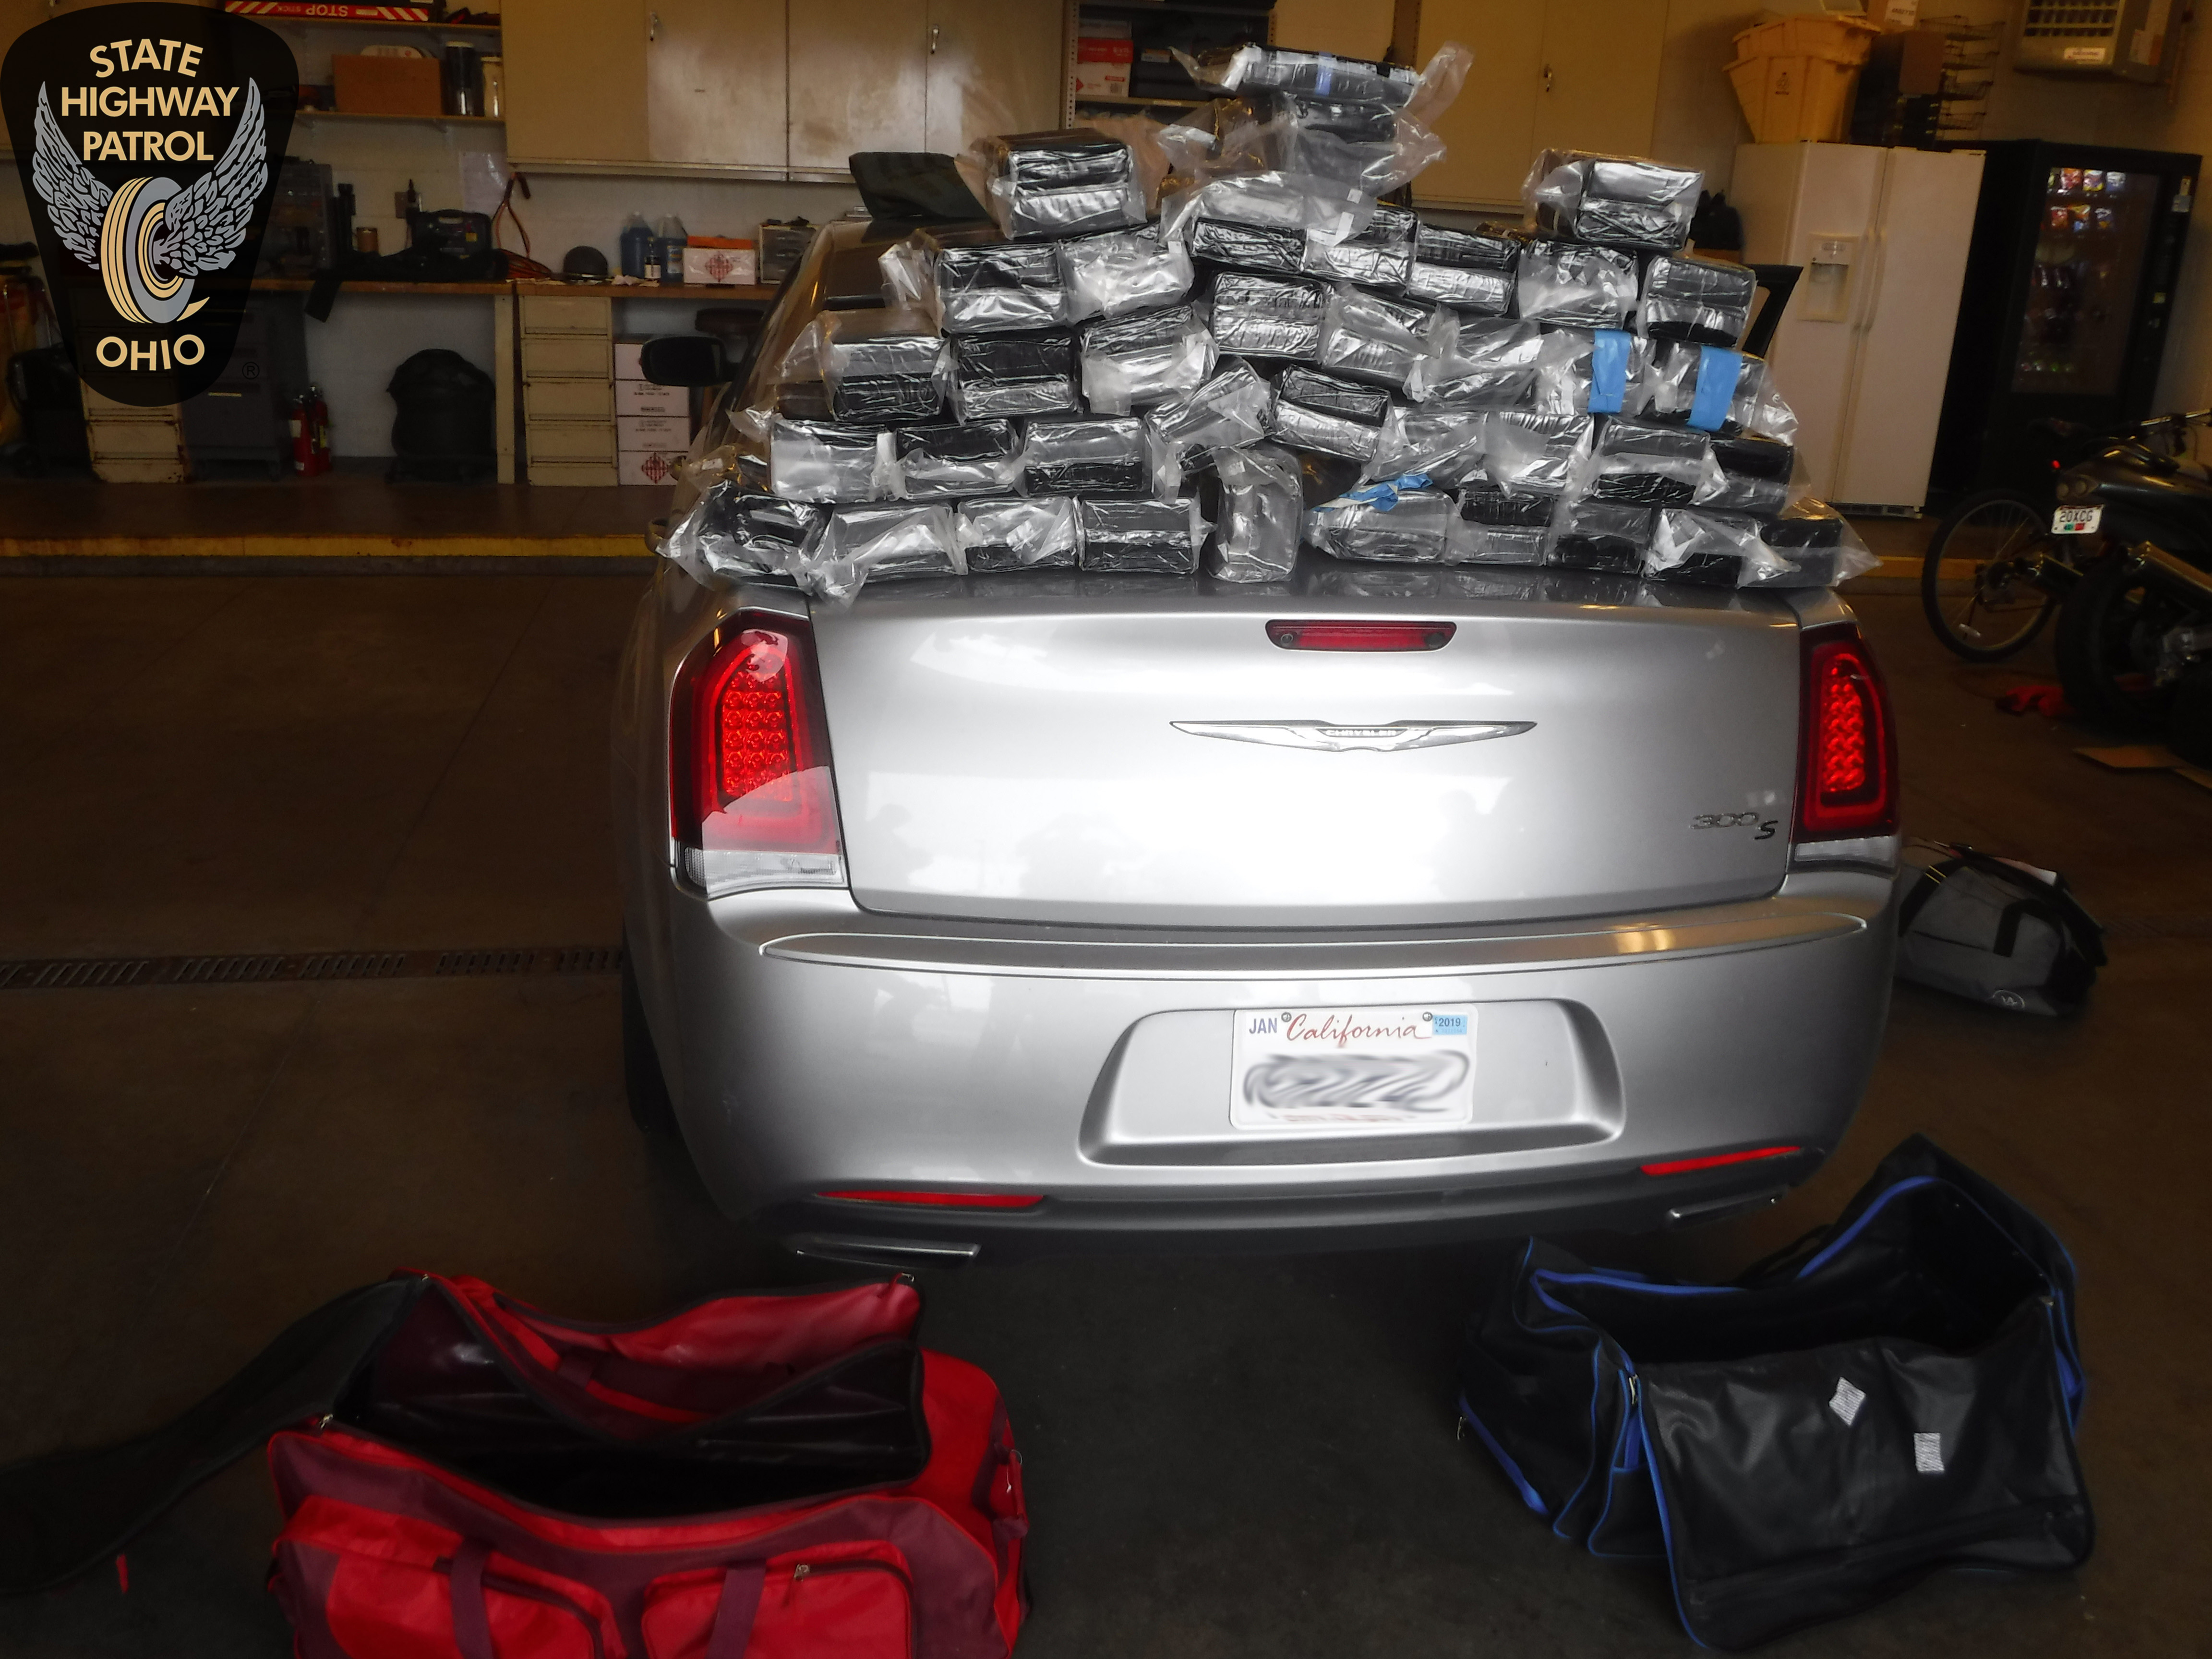 Troopers seize $6.3 million worth of cocaine in Wood County